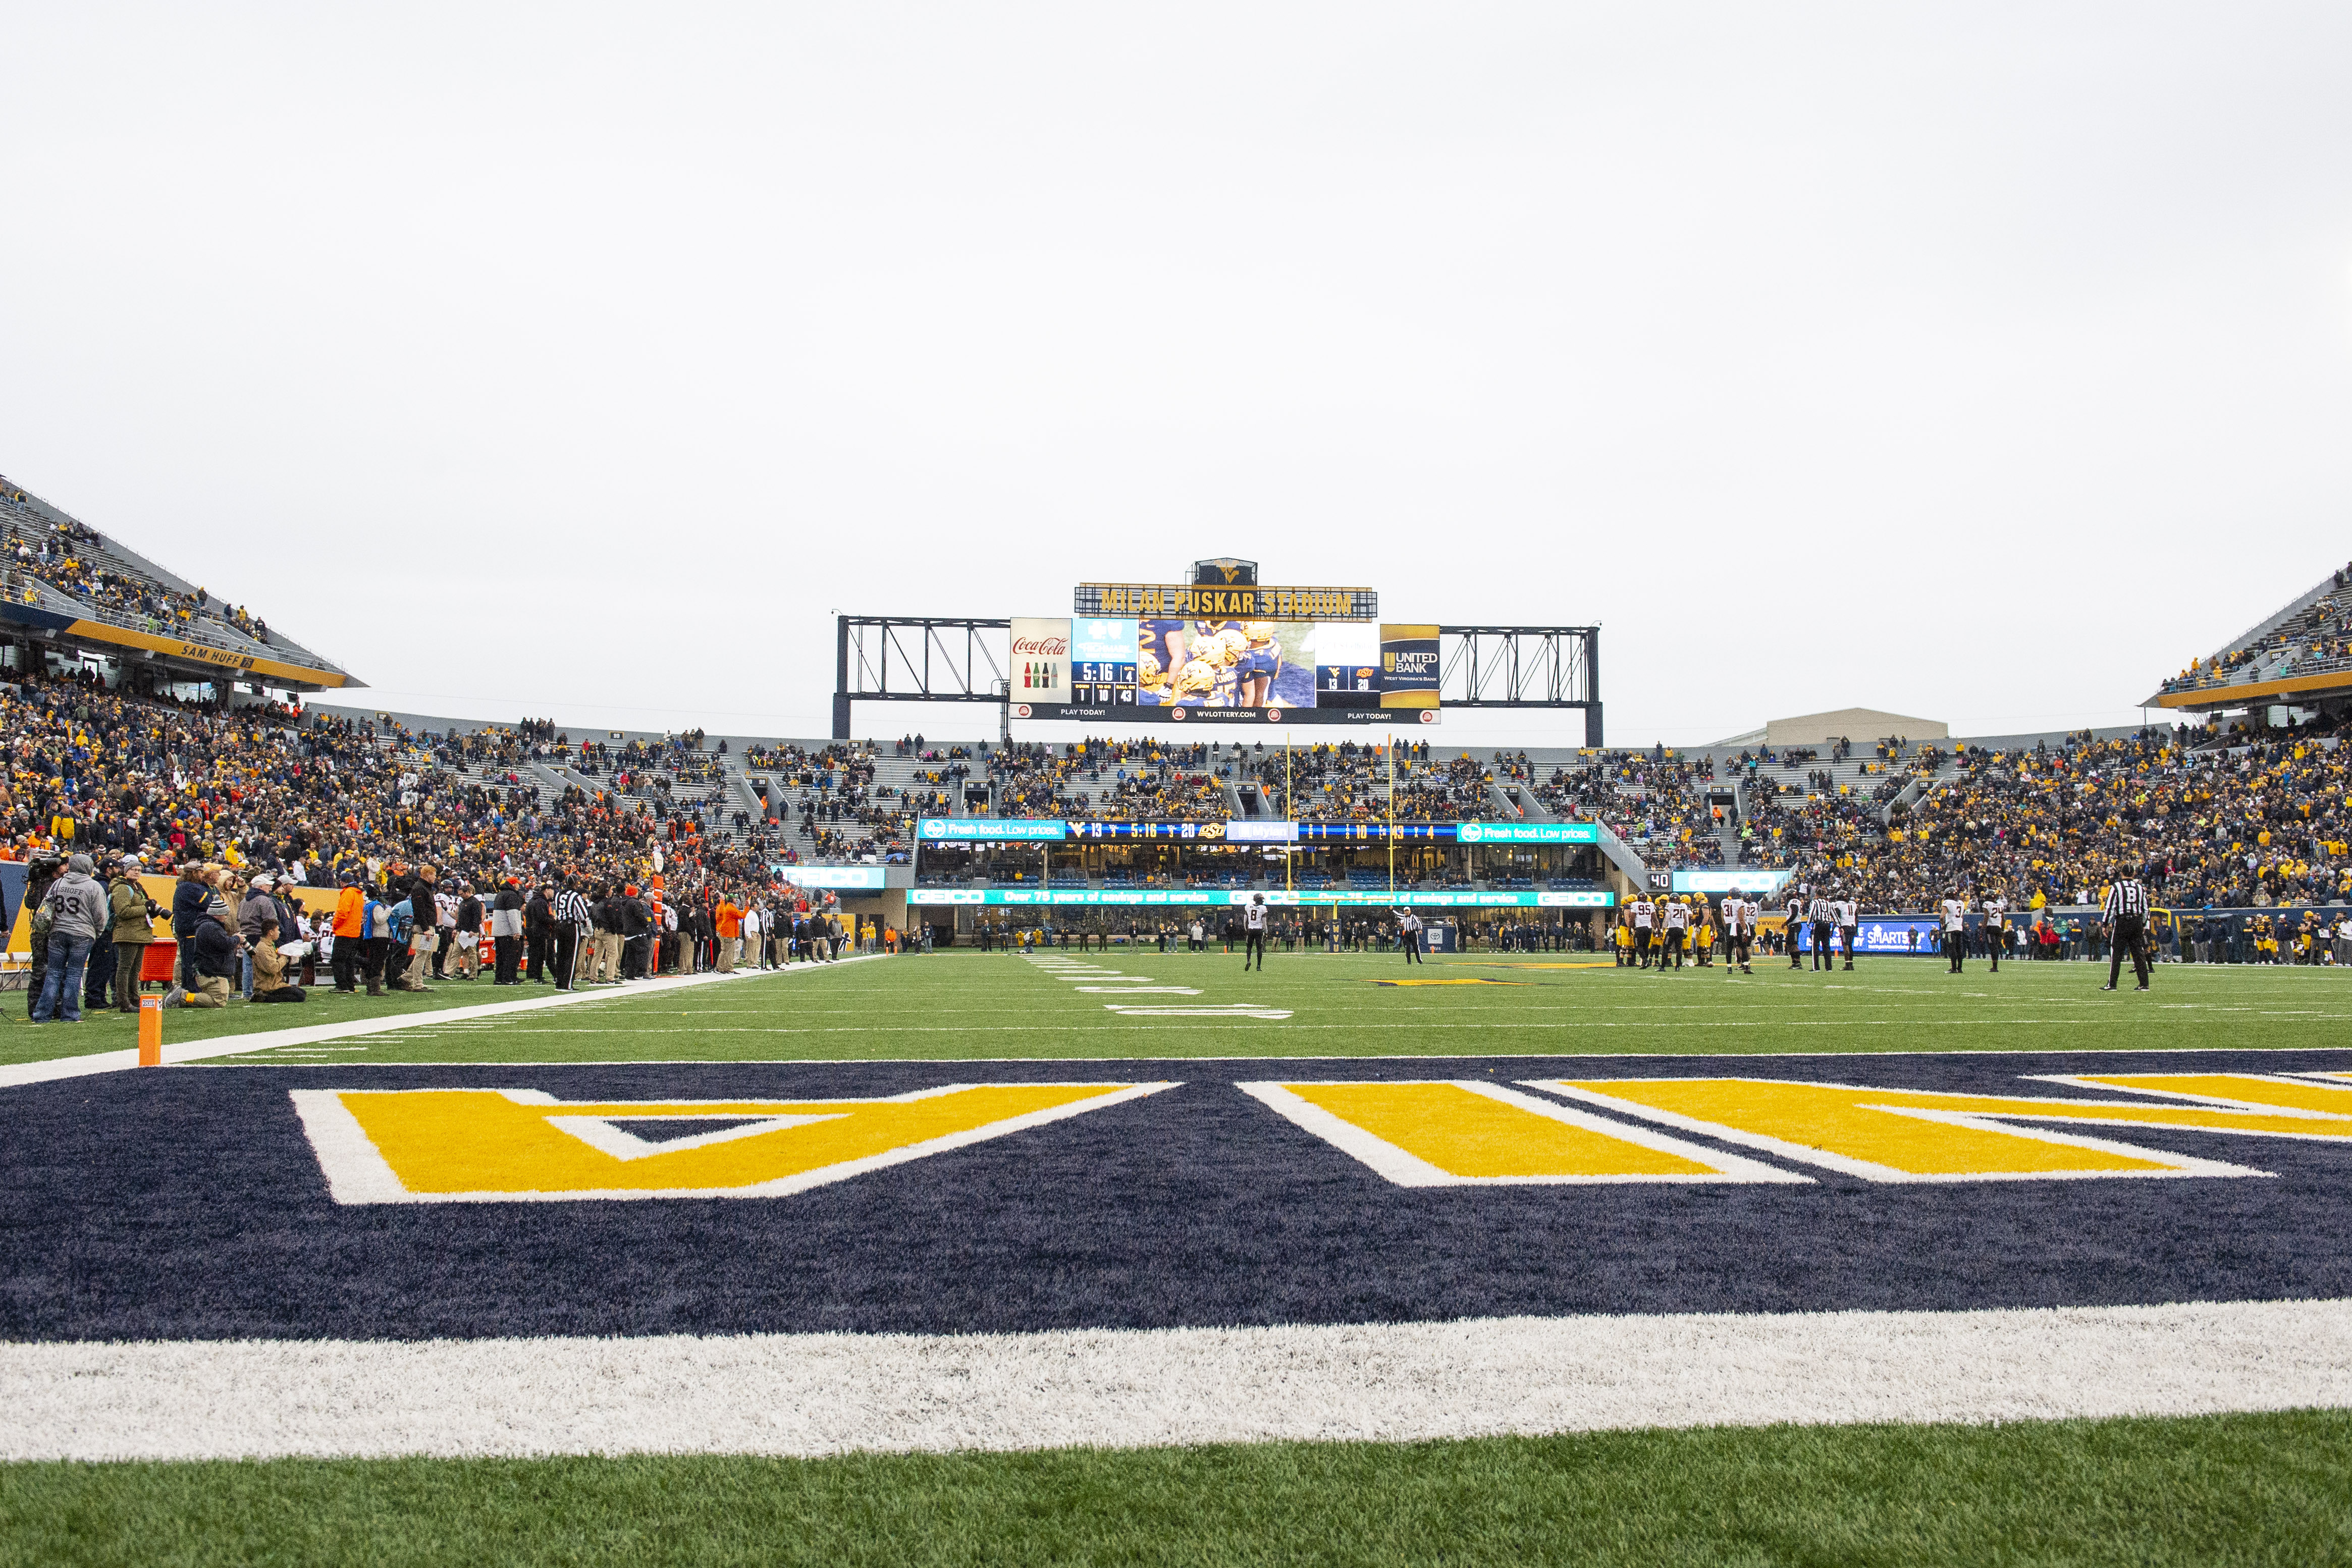 A view of Milan Puskar Stadium during a college football game between the Oklahoma Cowboys and the West Virginia Mountaineers on November 23, 2019.